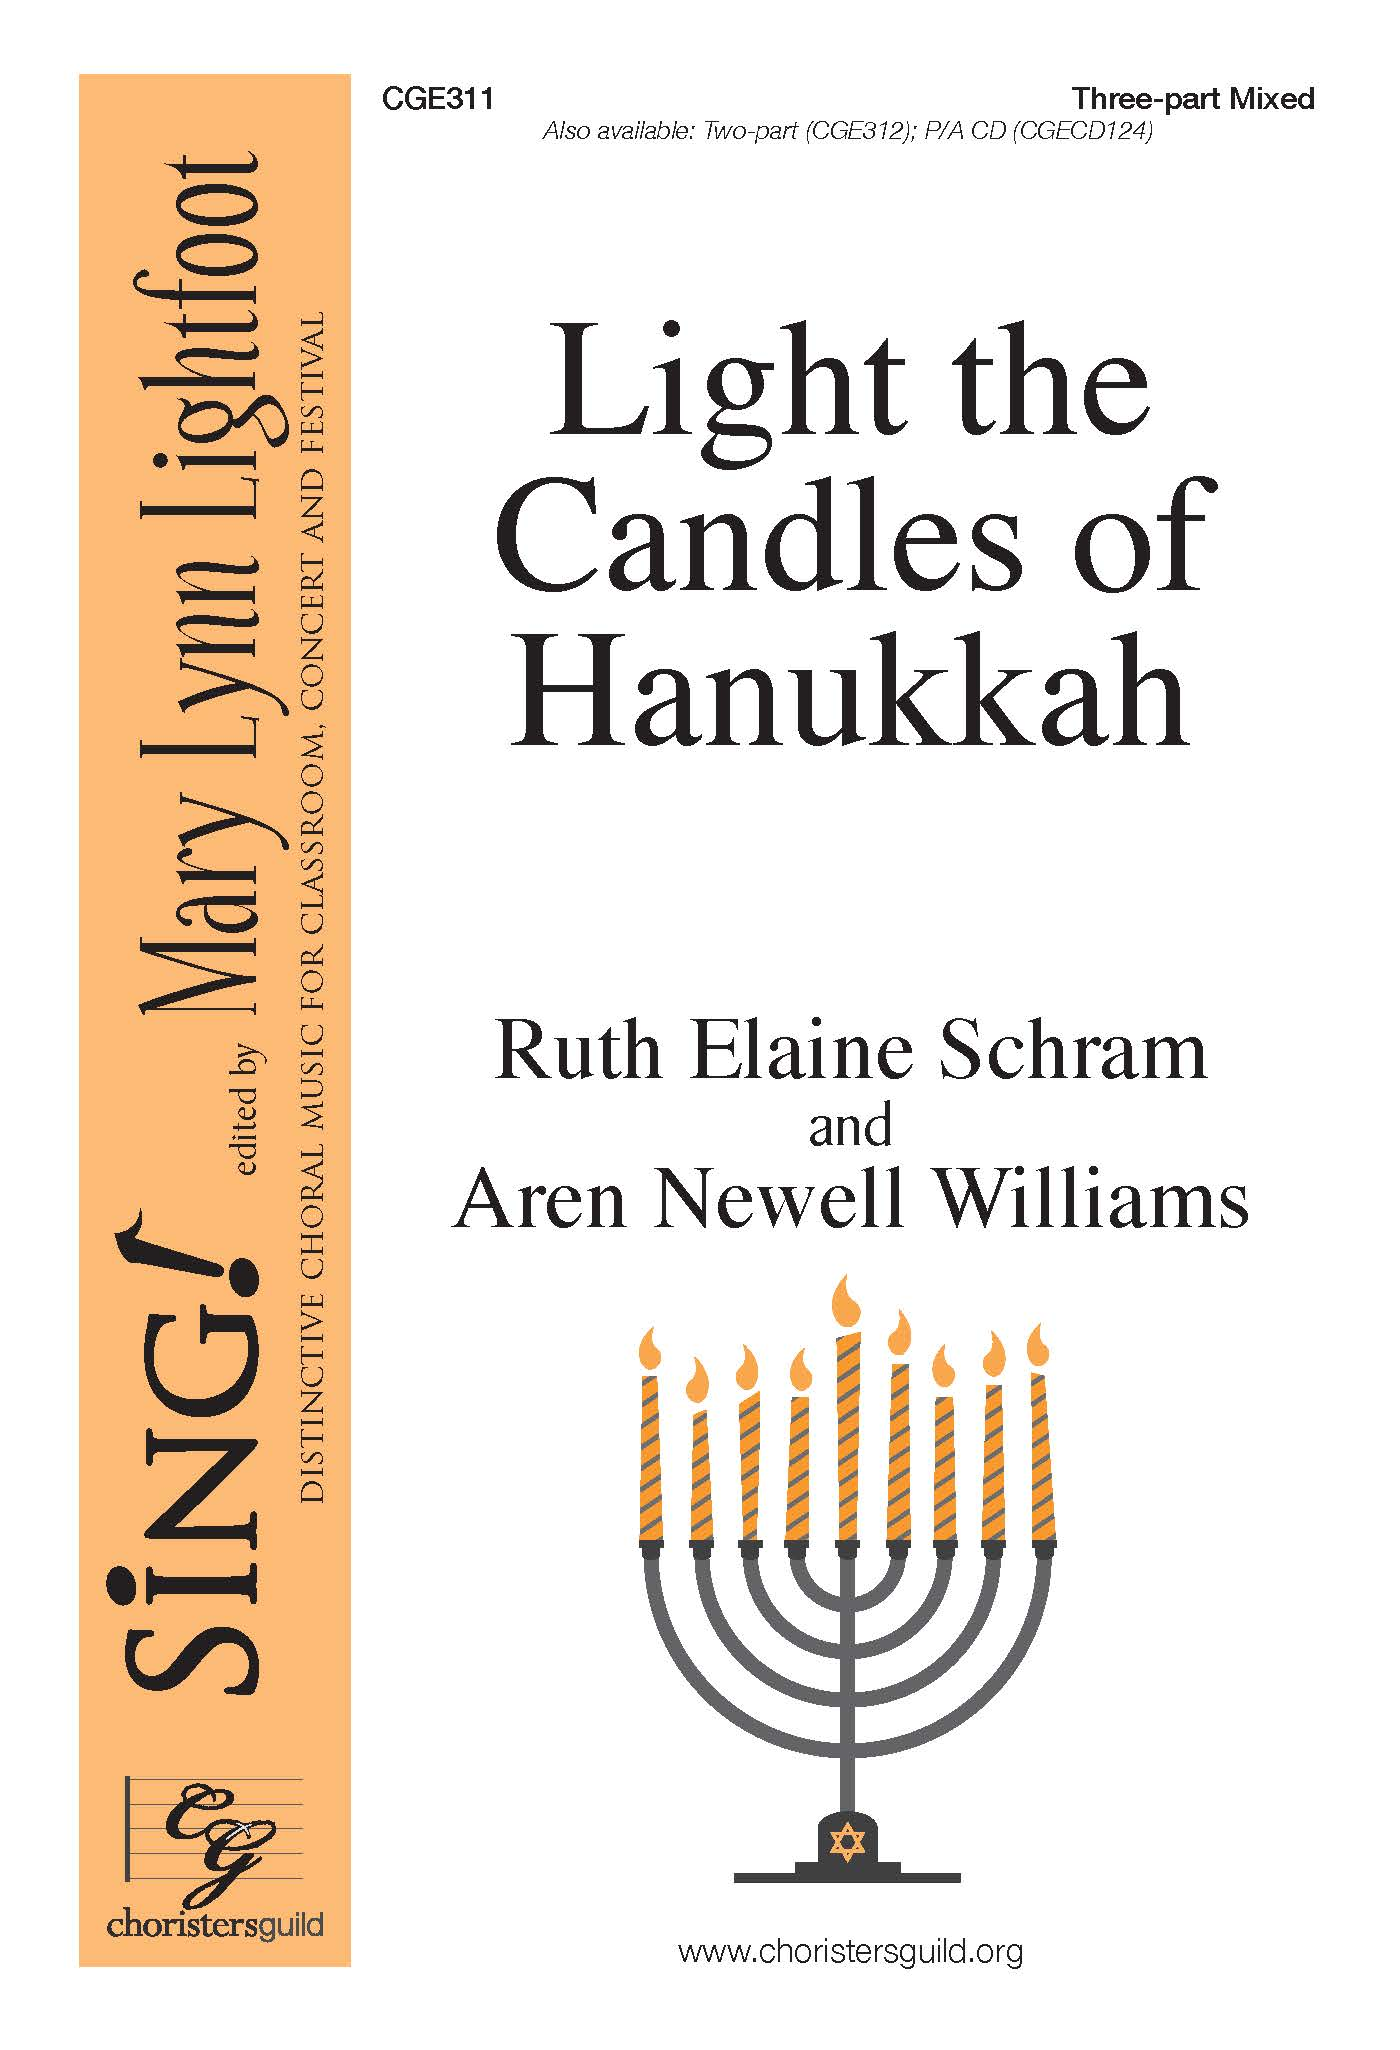 Light the Candles of Hanukkah - Three-part Mixed